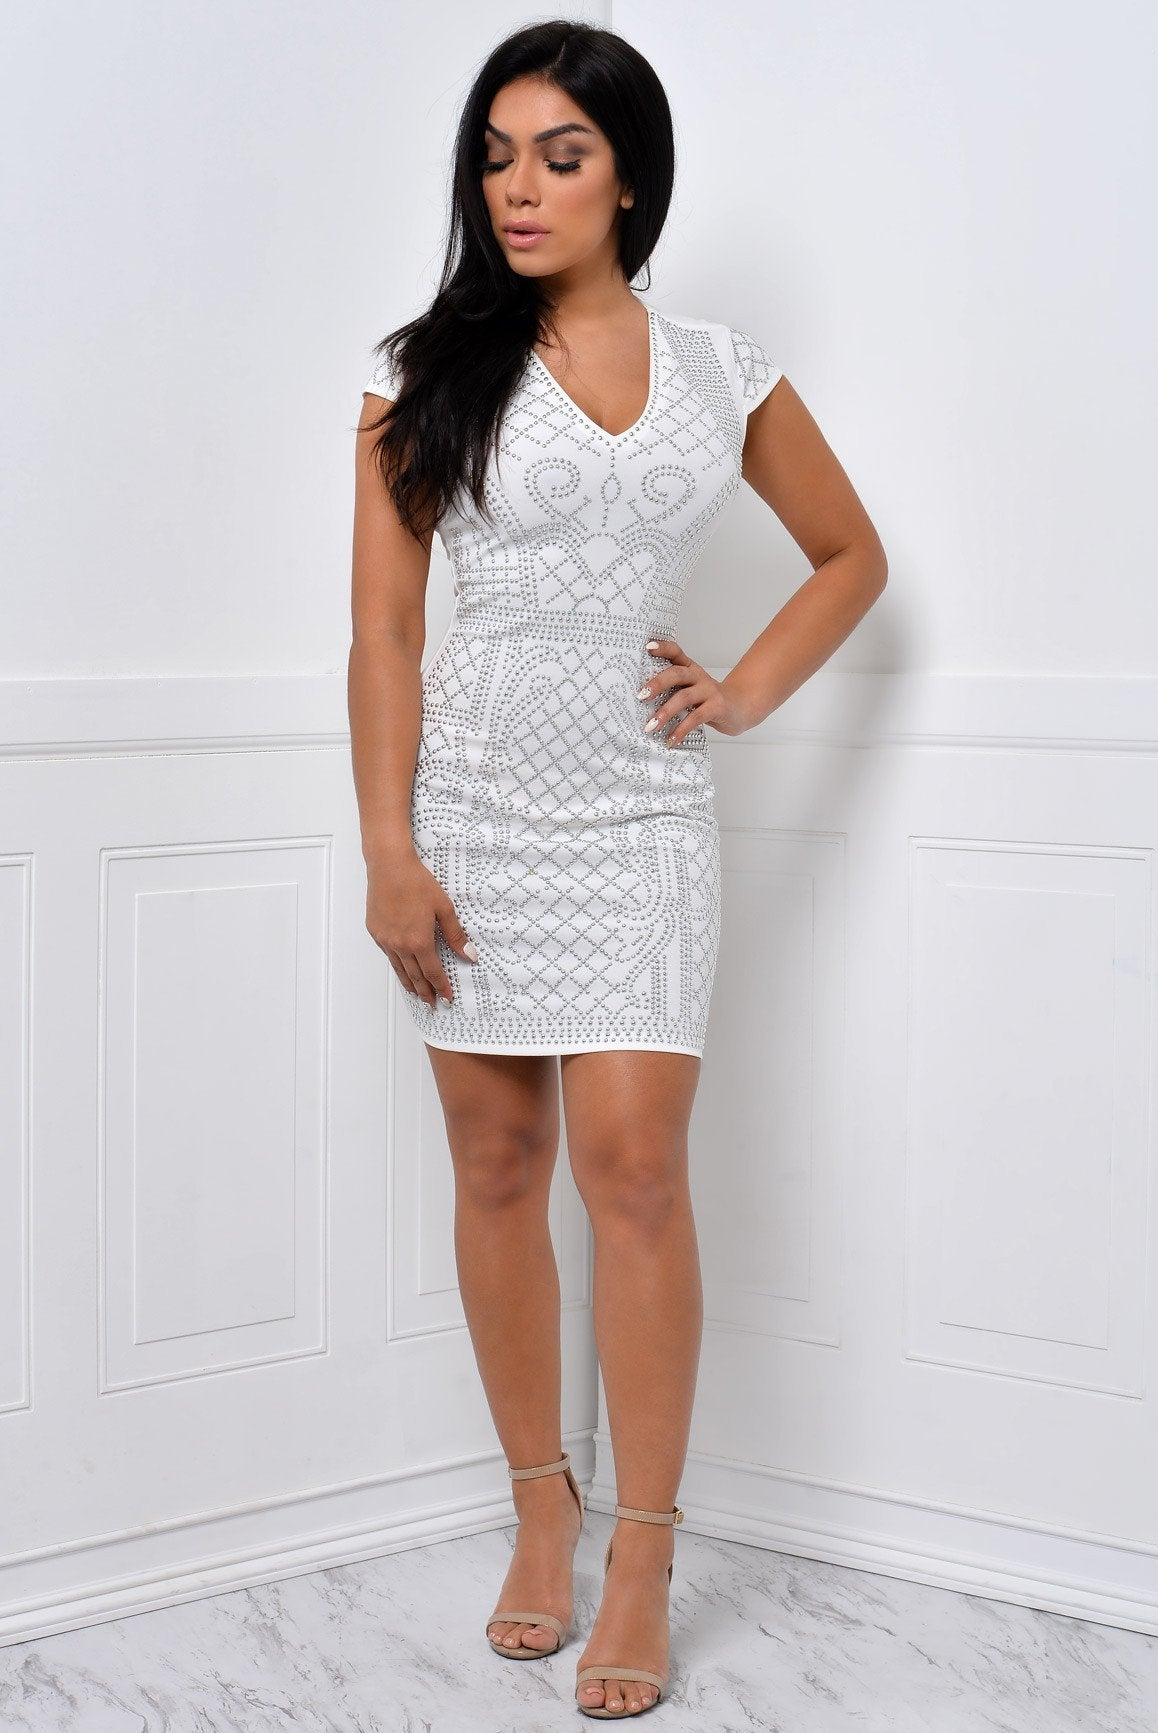 You Will Never Know White Dress - Fashion Effect Store  - 1